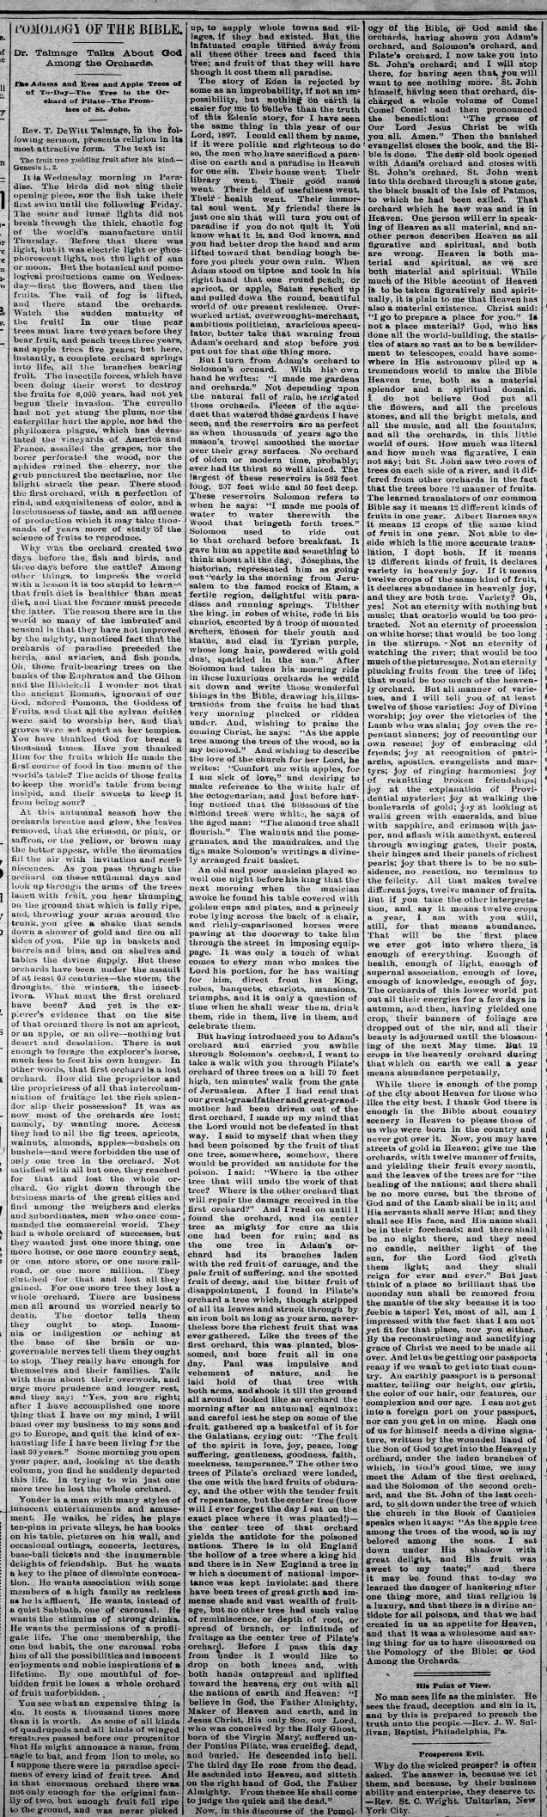 Pomology of the Bible 1897 - Newspapers com